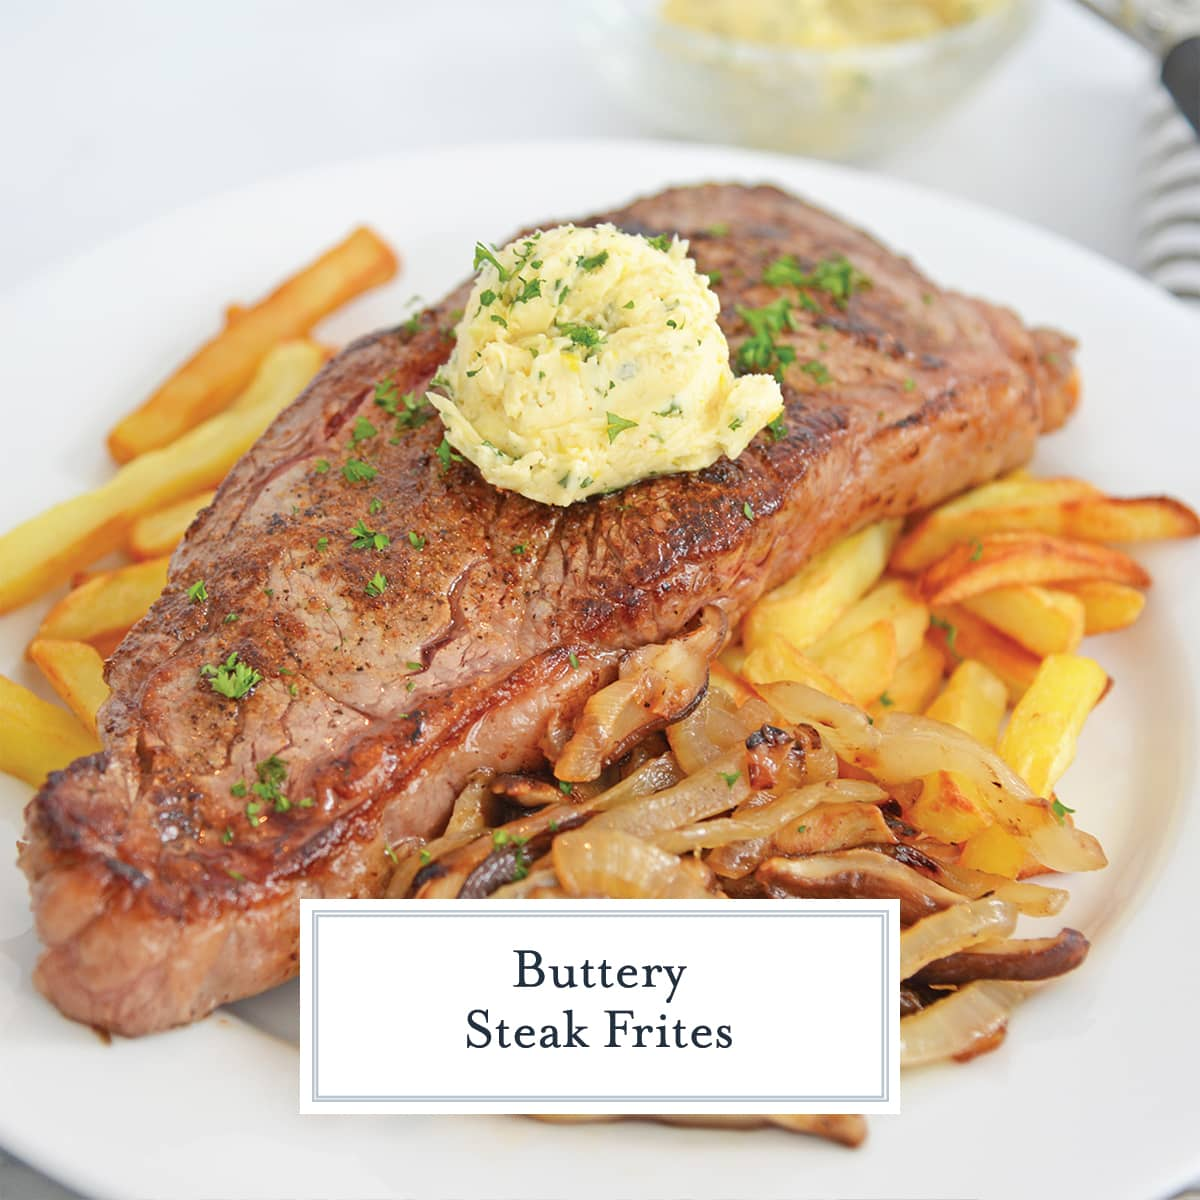 angle view of strip steak over french fries and topped with butter